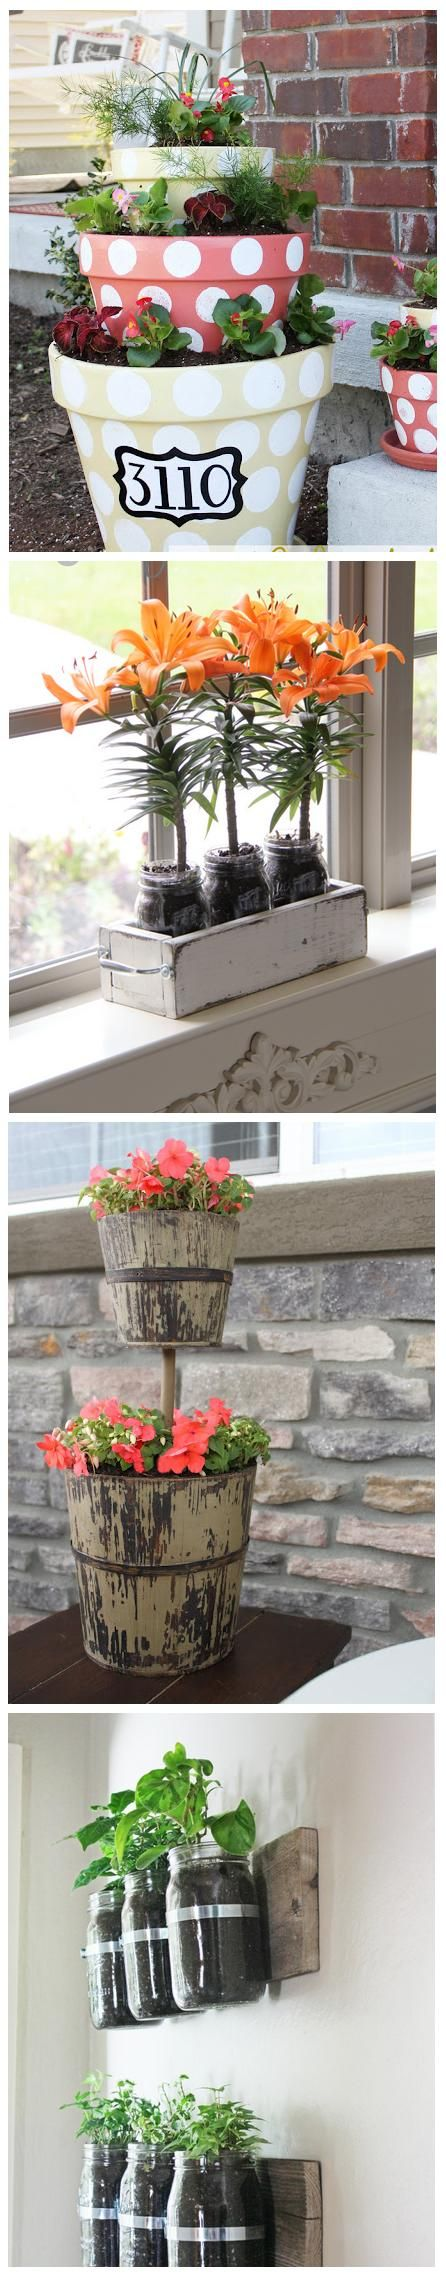 Small Box Planter. Doing this for my kitchen window